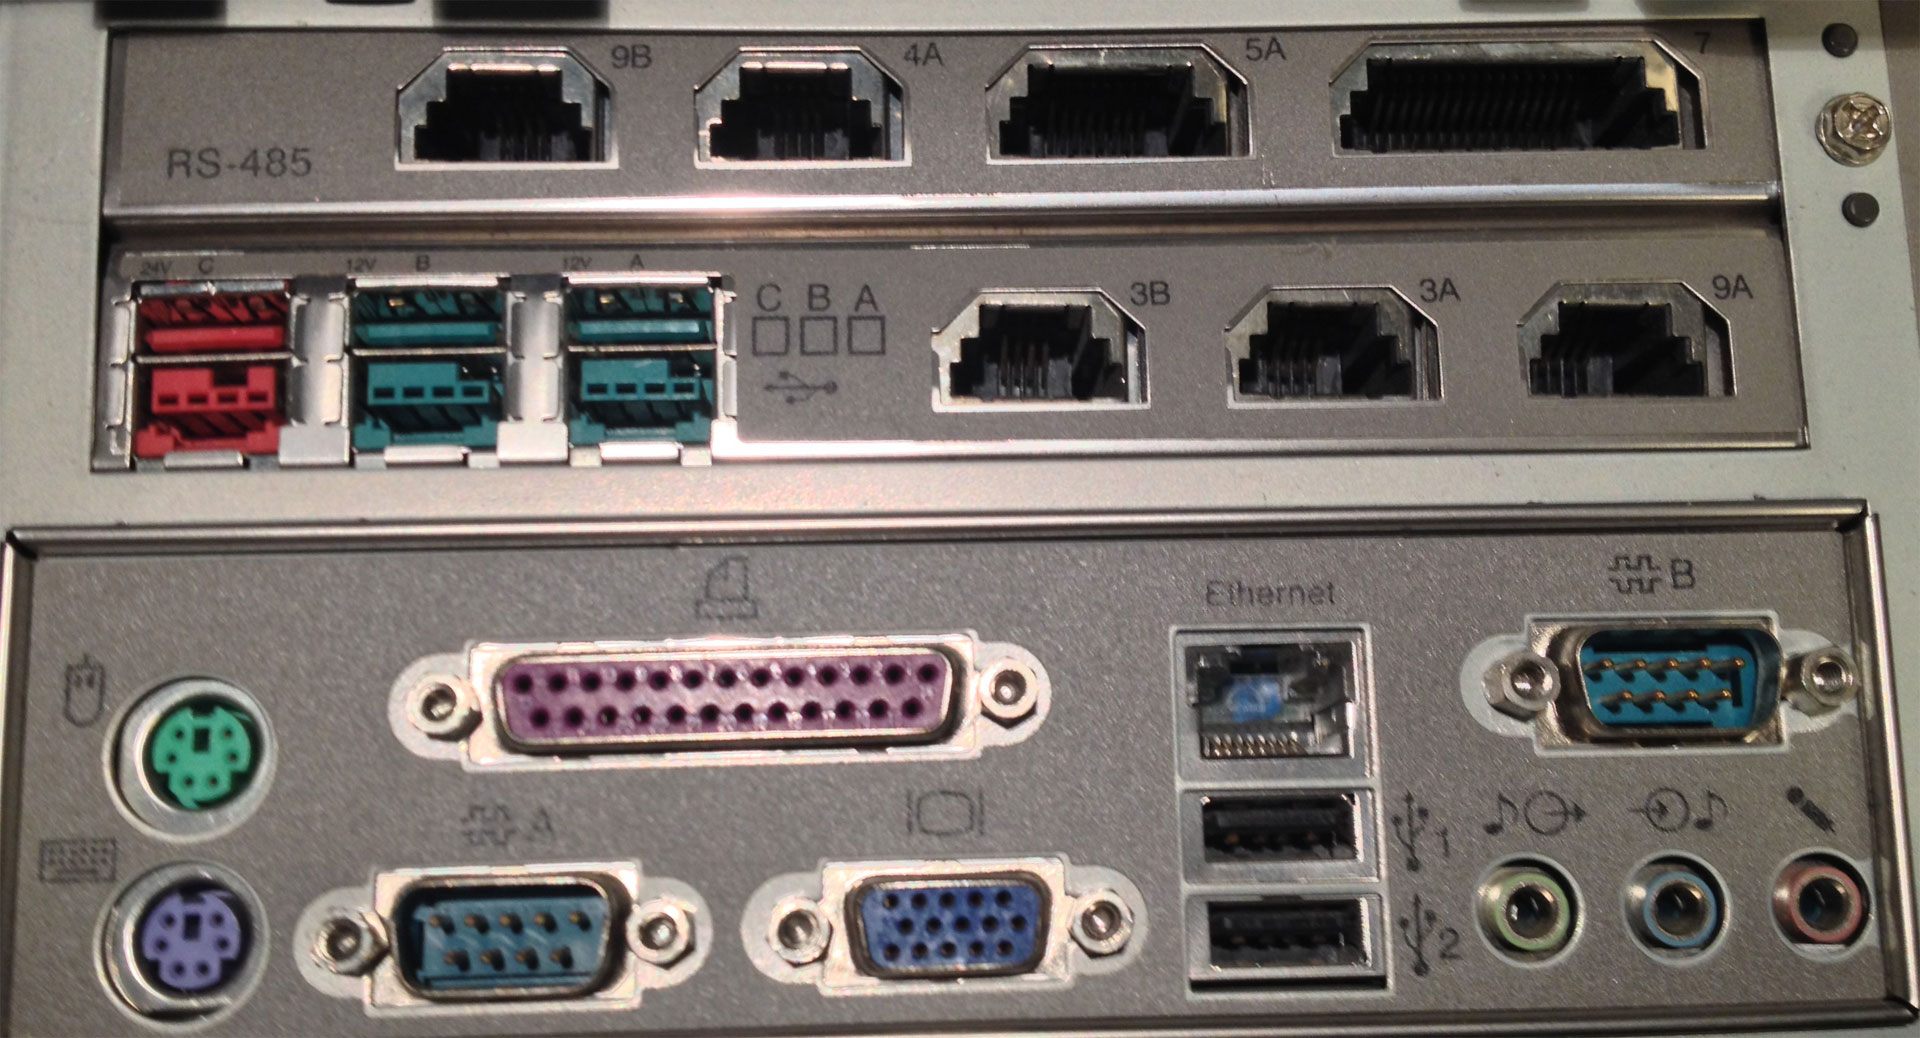 SurePOS-4800-Edge connectors and ports